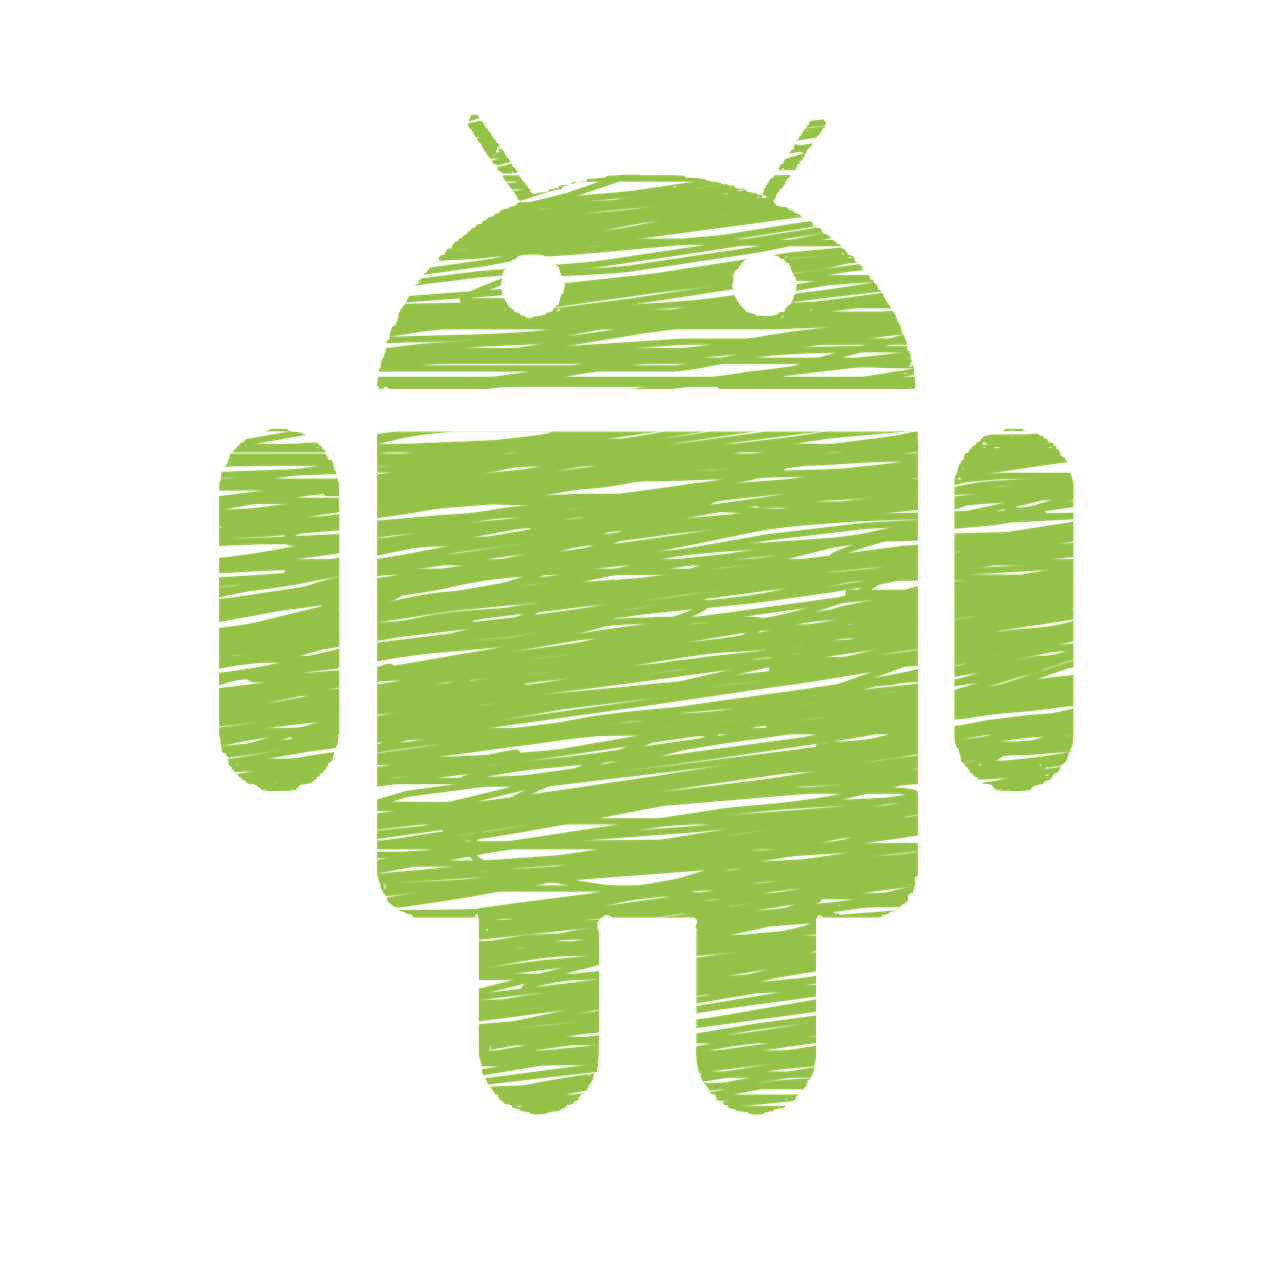 Google's Not the Only One with Its Hand on The Android Controls